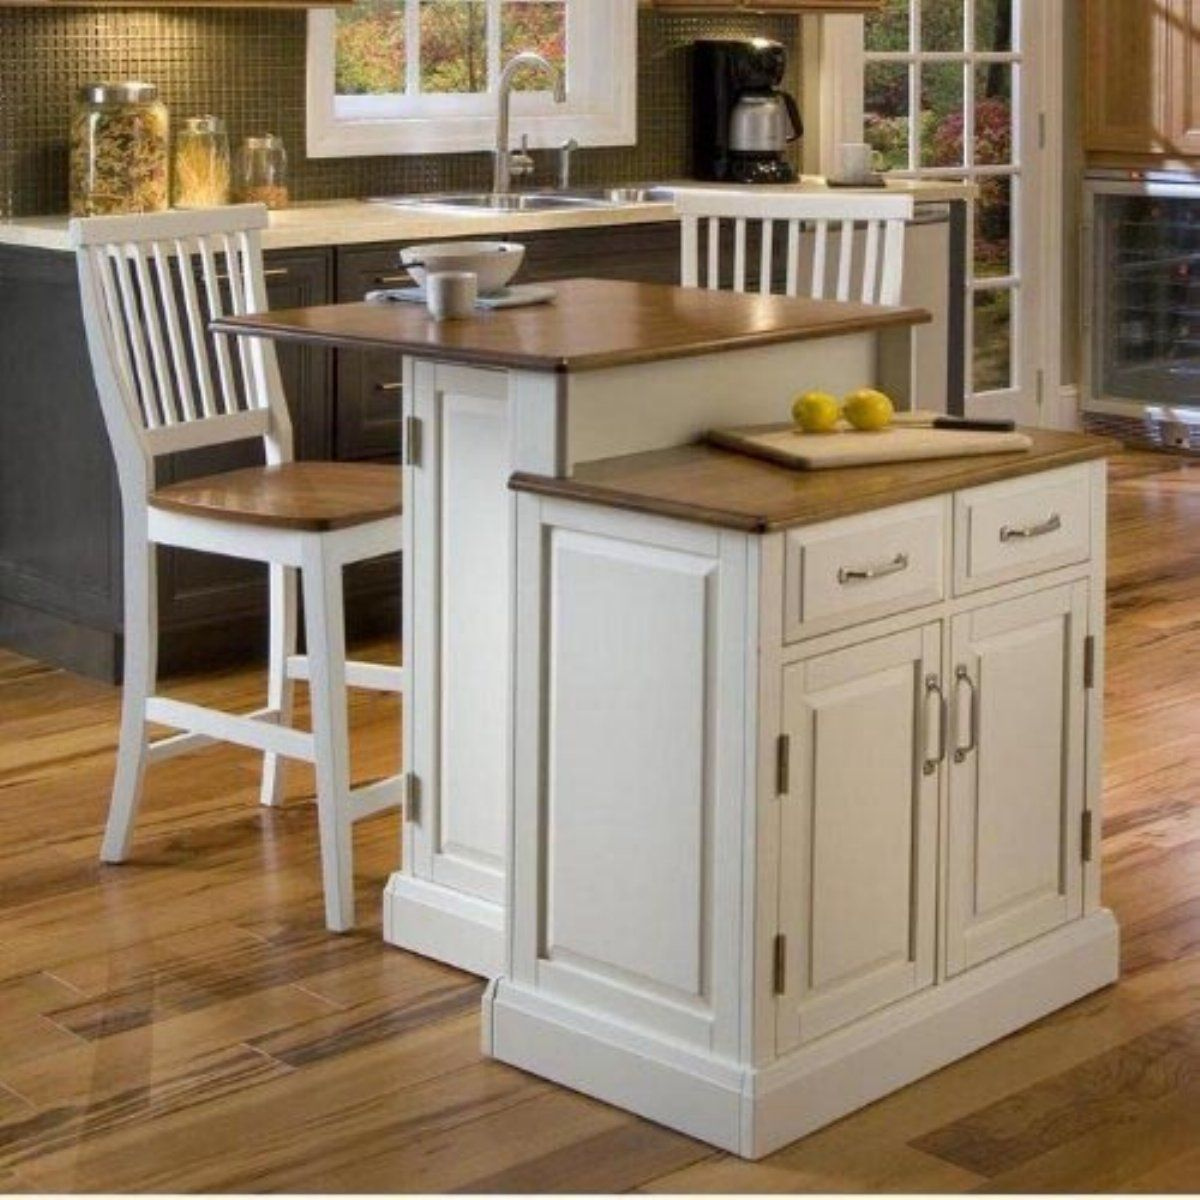 Charmant Home Styles Woodbridge Two Tier Kitchen Island 3 Pc. Set With 2 Stools    White U0026 Oak   If You Think Two Is Better Than One, Then Youu0027ll Love The  Home Styles ...